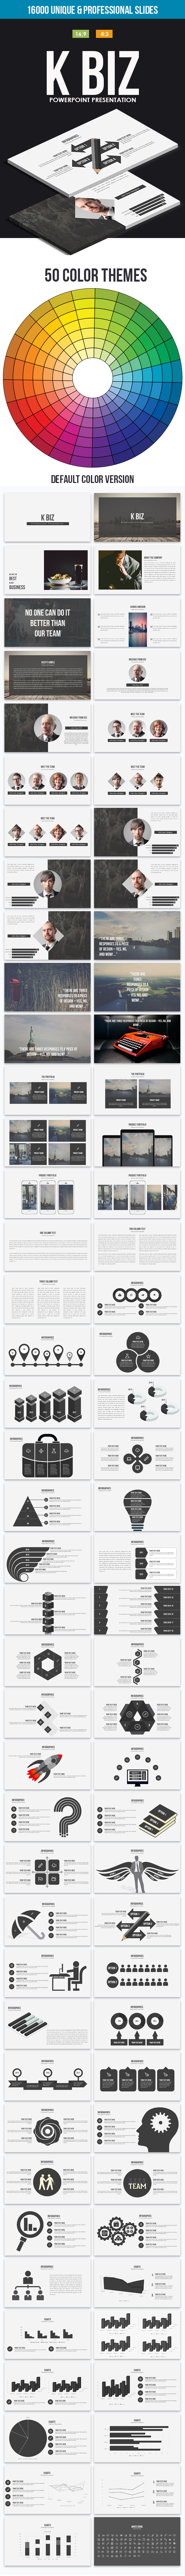 K Biz Powerpoint Template - Business PowerPoint Templates